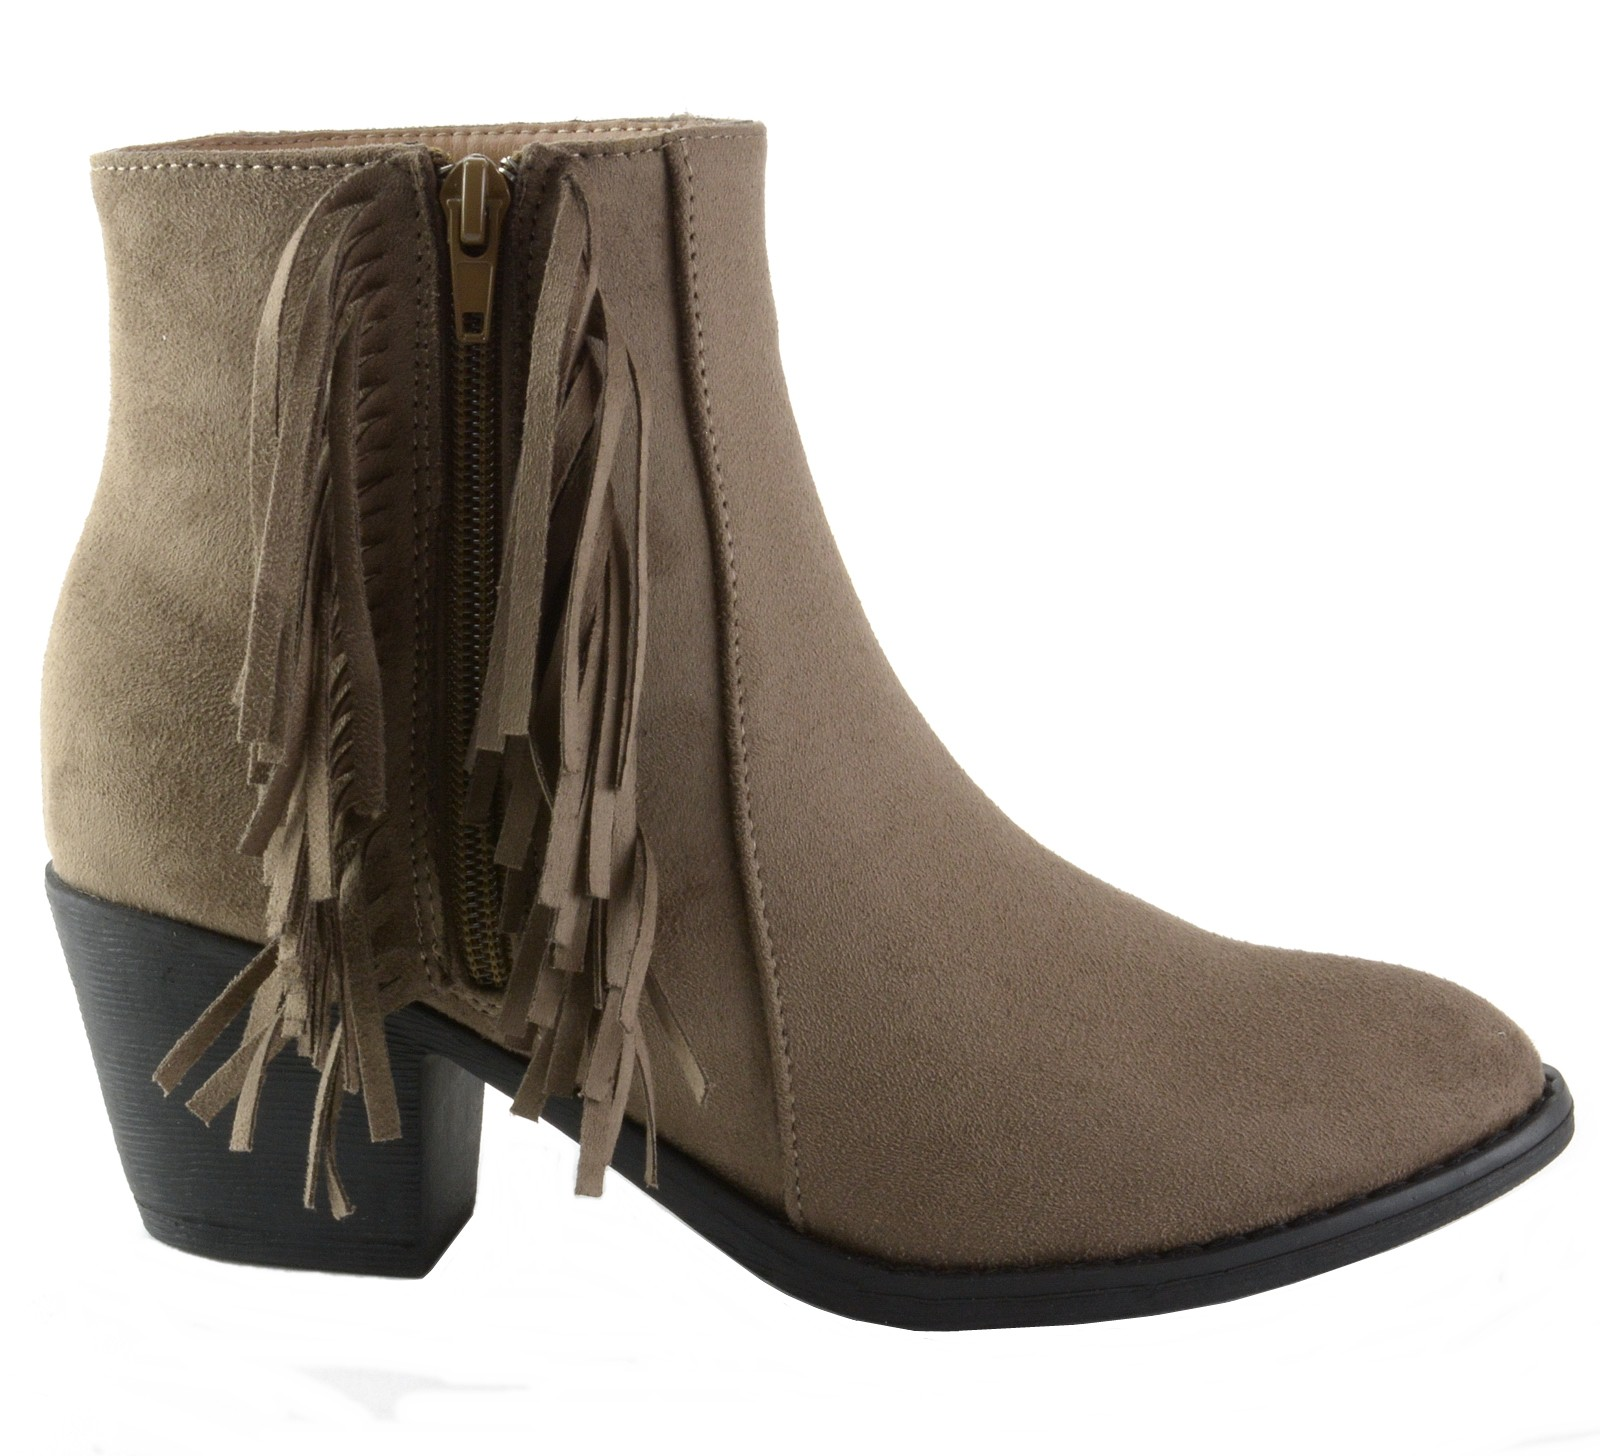 Alpine-Swiss-Arosa-Womens-Ankle-Boots-Fringe-Shoes-Block-High-Heel-Micro-Suede thumbnail 20